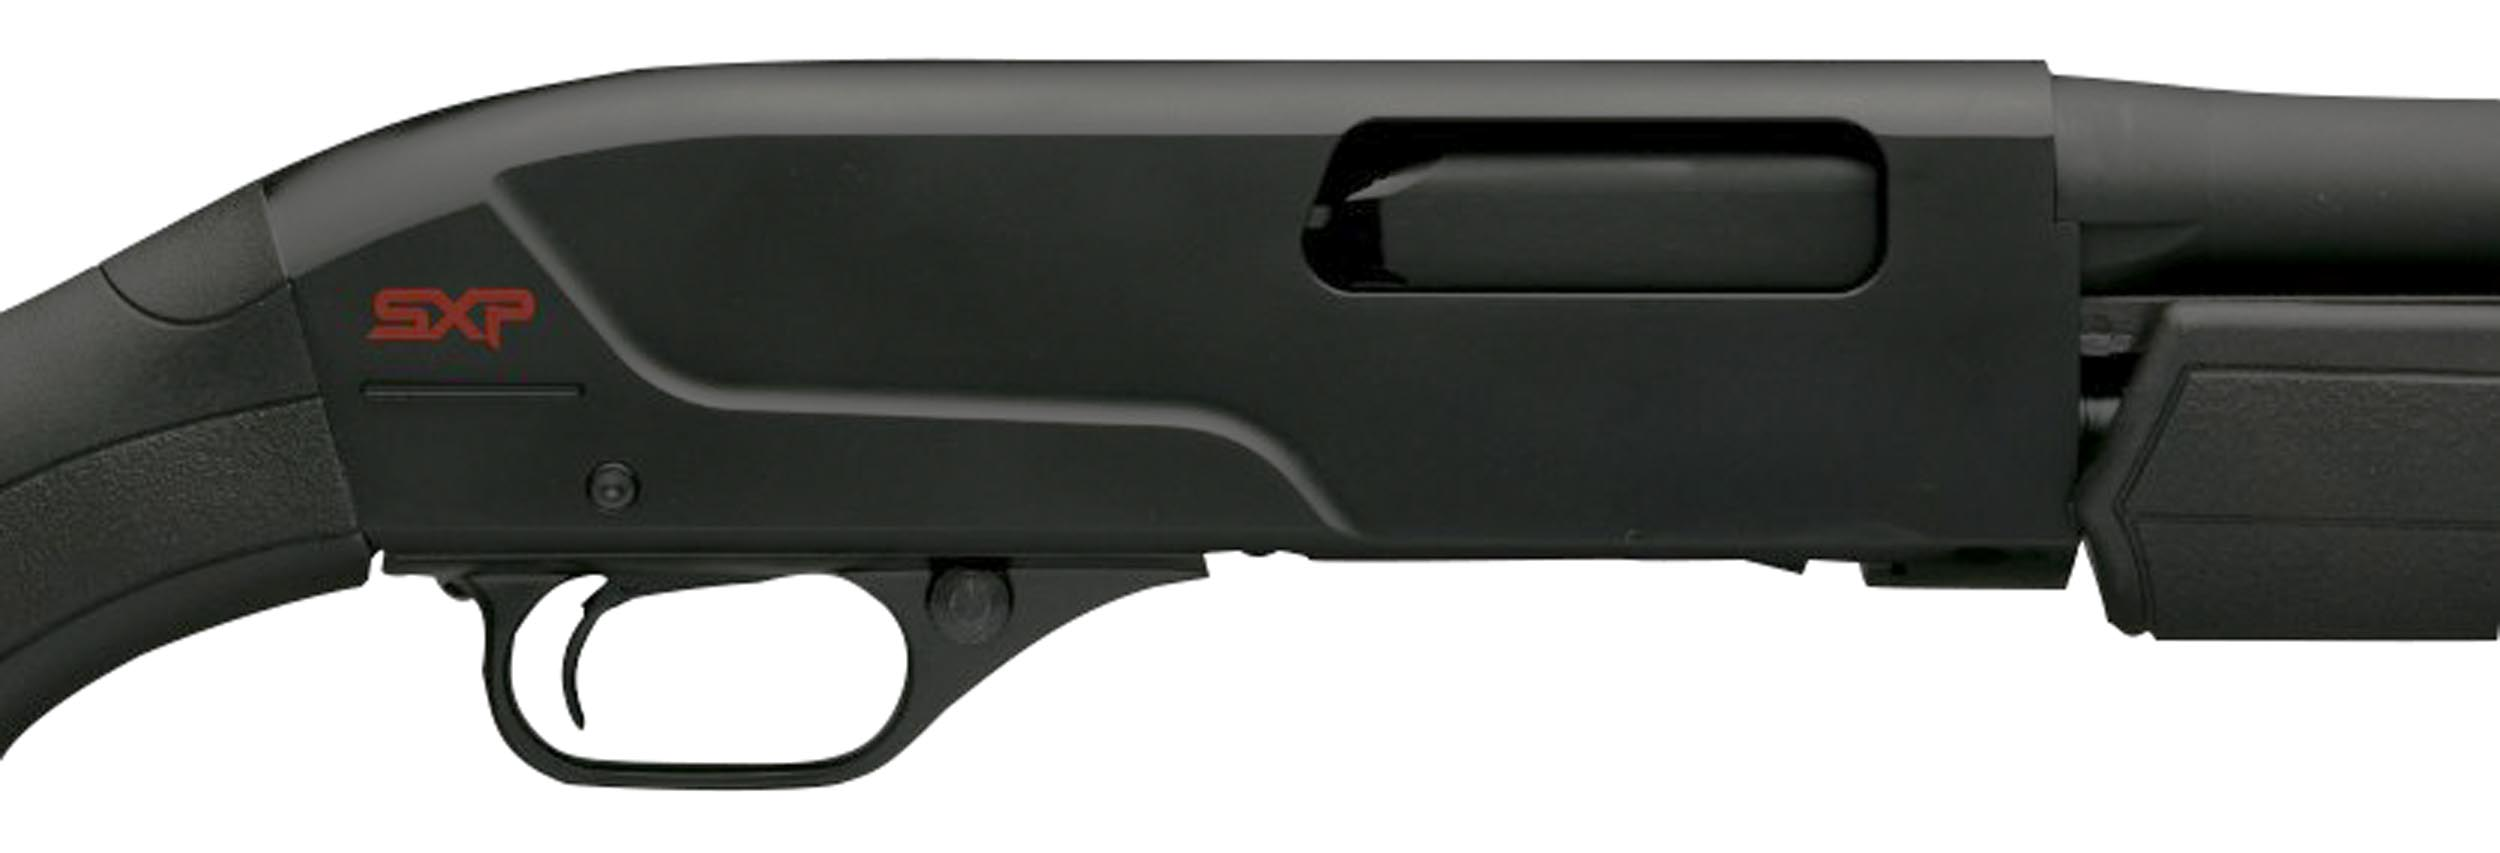 BRO55240-2 SXP Black Shadow Deer Winchester Shotgun - 12/76 - BRO55240